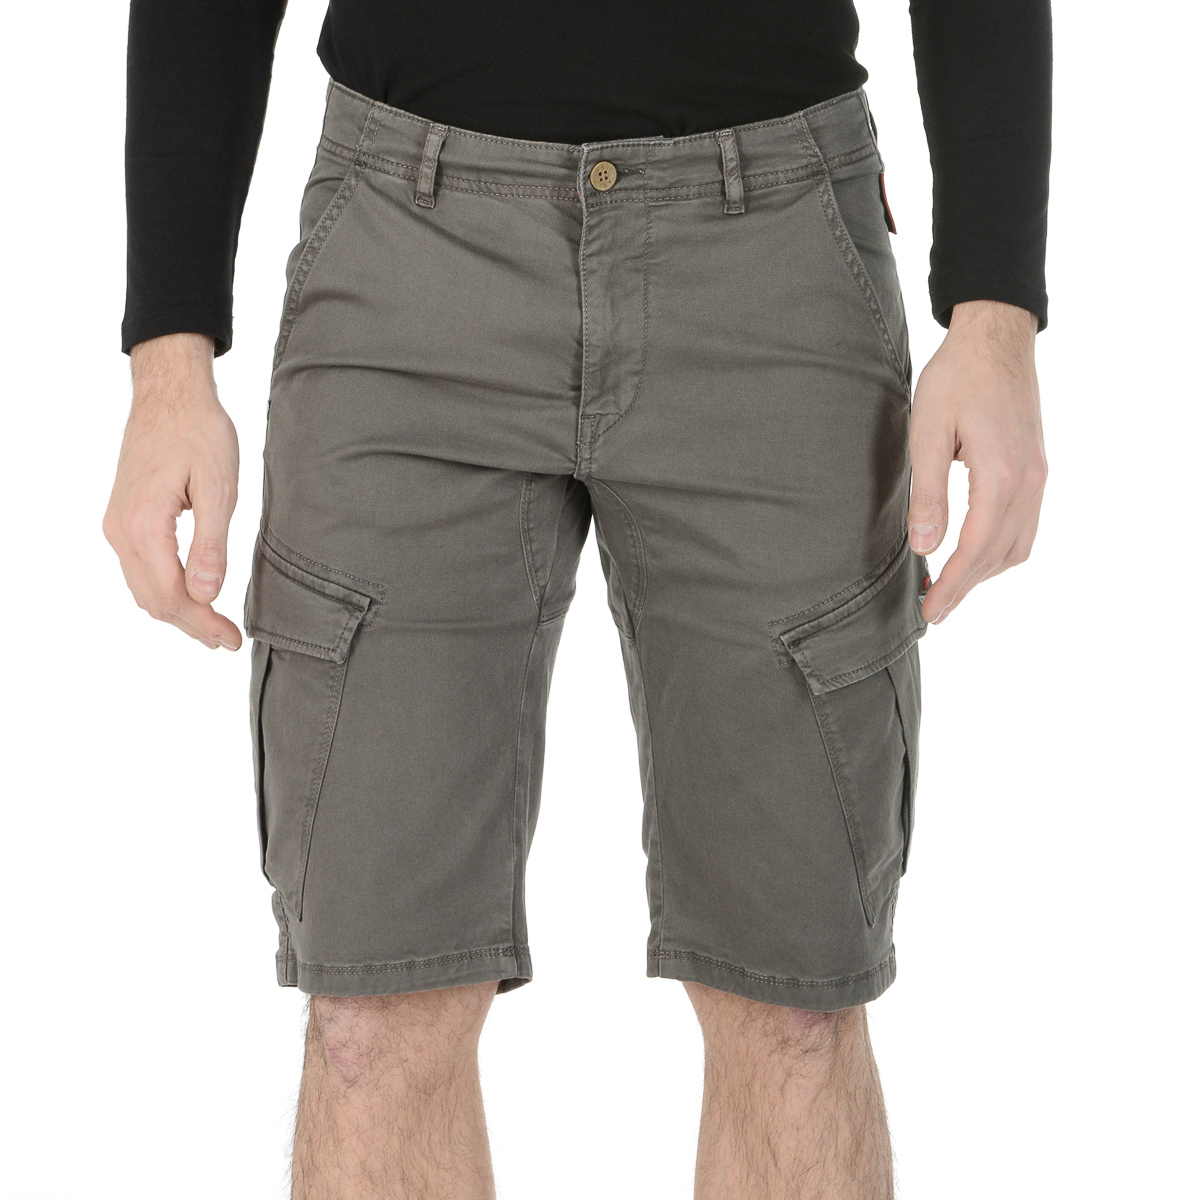 Primary image for Andrew Charles Mens Shorts Brown JAKO